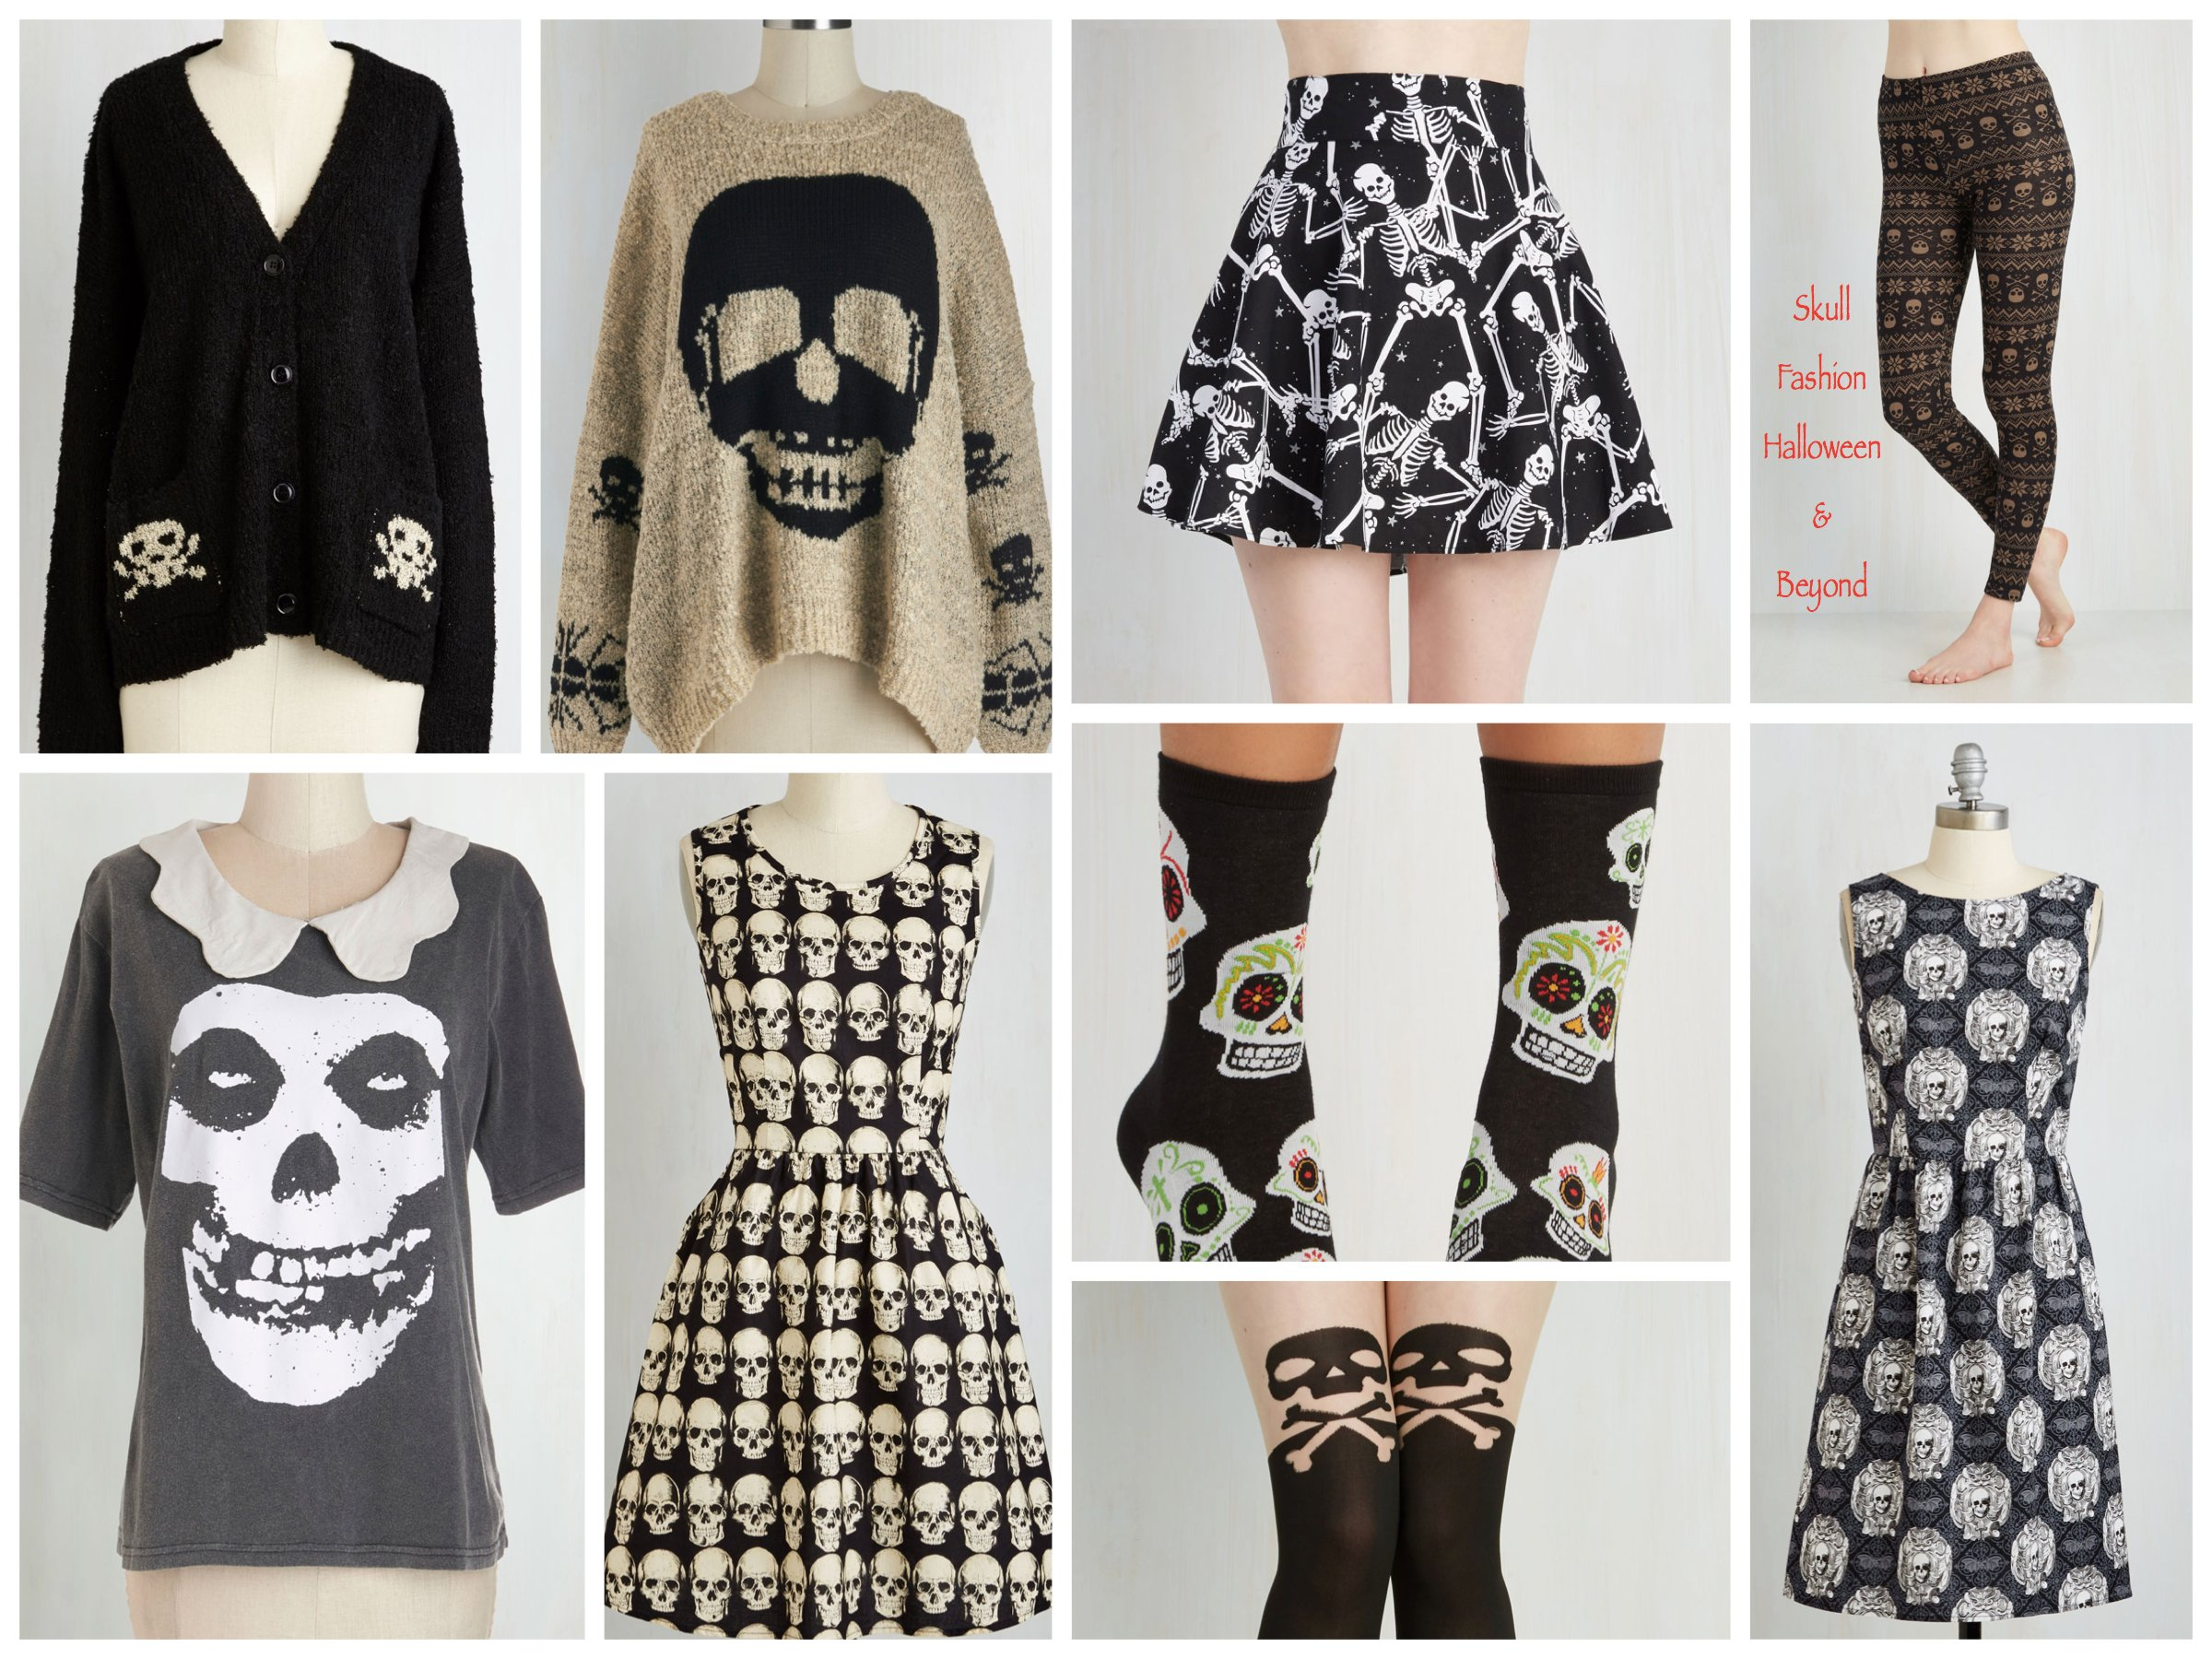 Skull Fashion Halloween and Beyond, Halloween Costume Trend